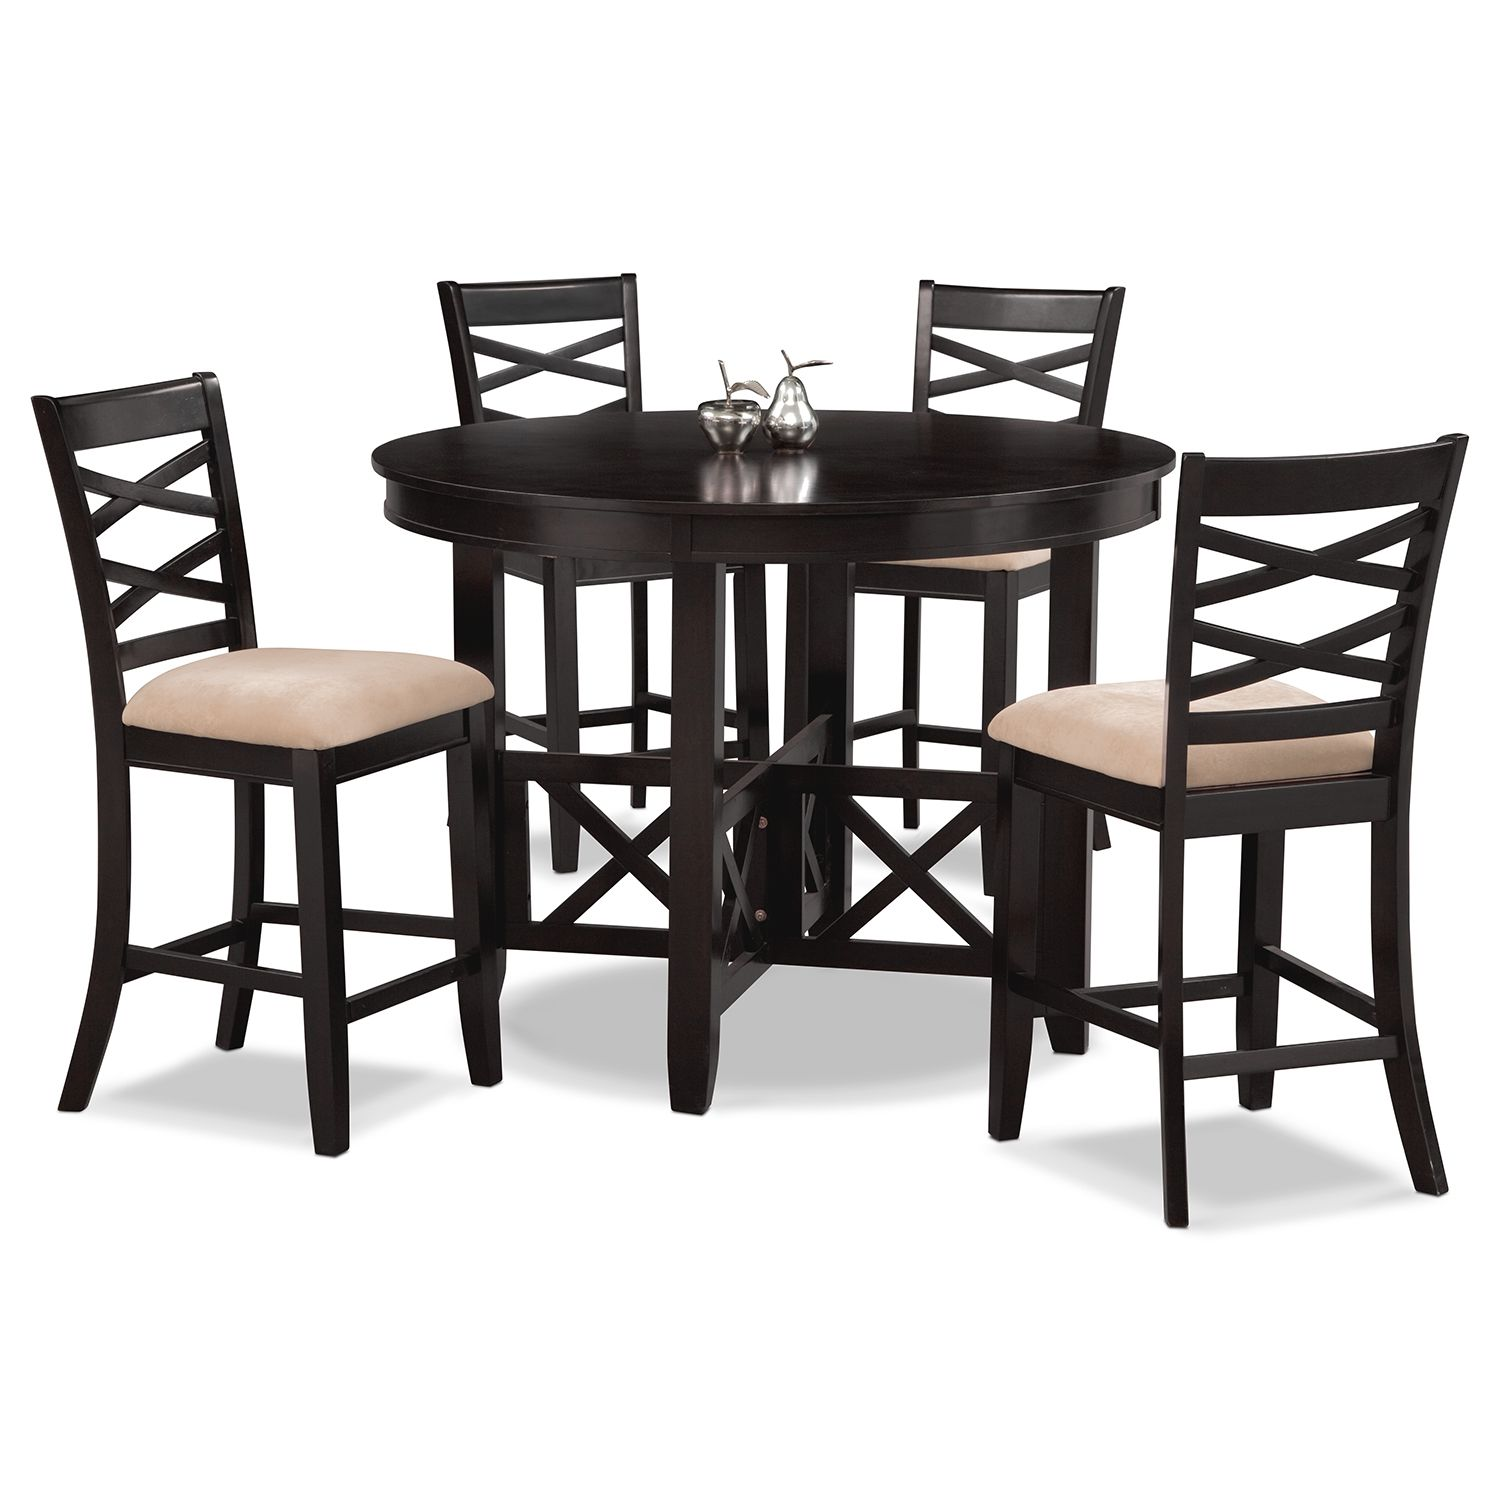 Dining Room Furniture - Americana Espresso 5 Pc. Counter-Height ...